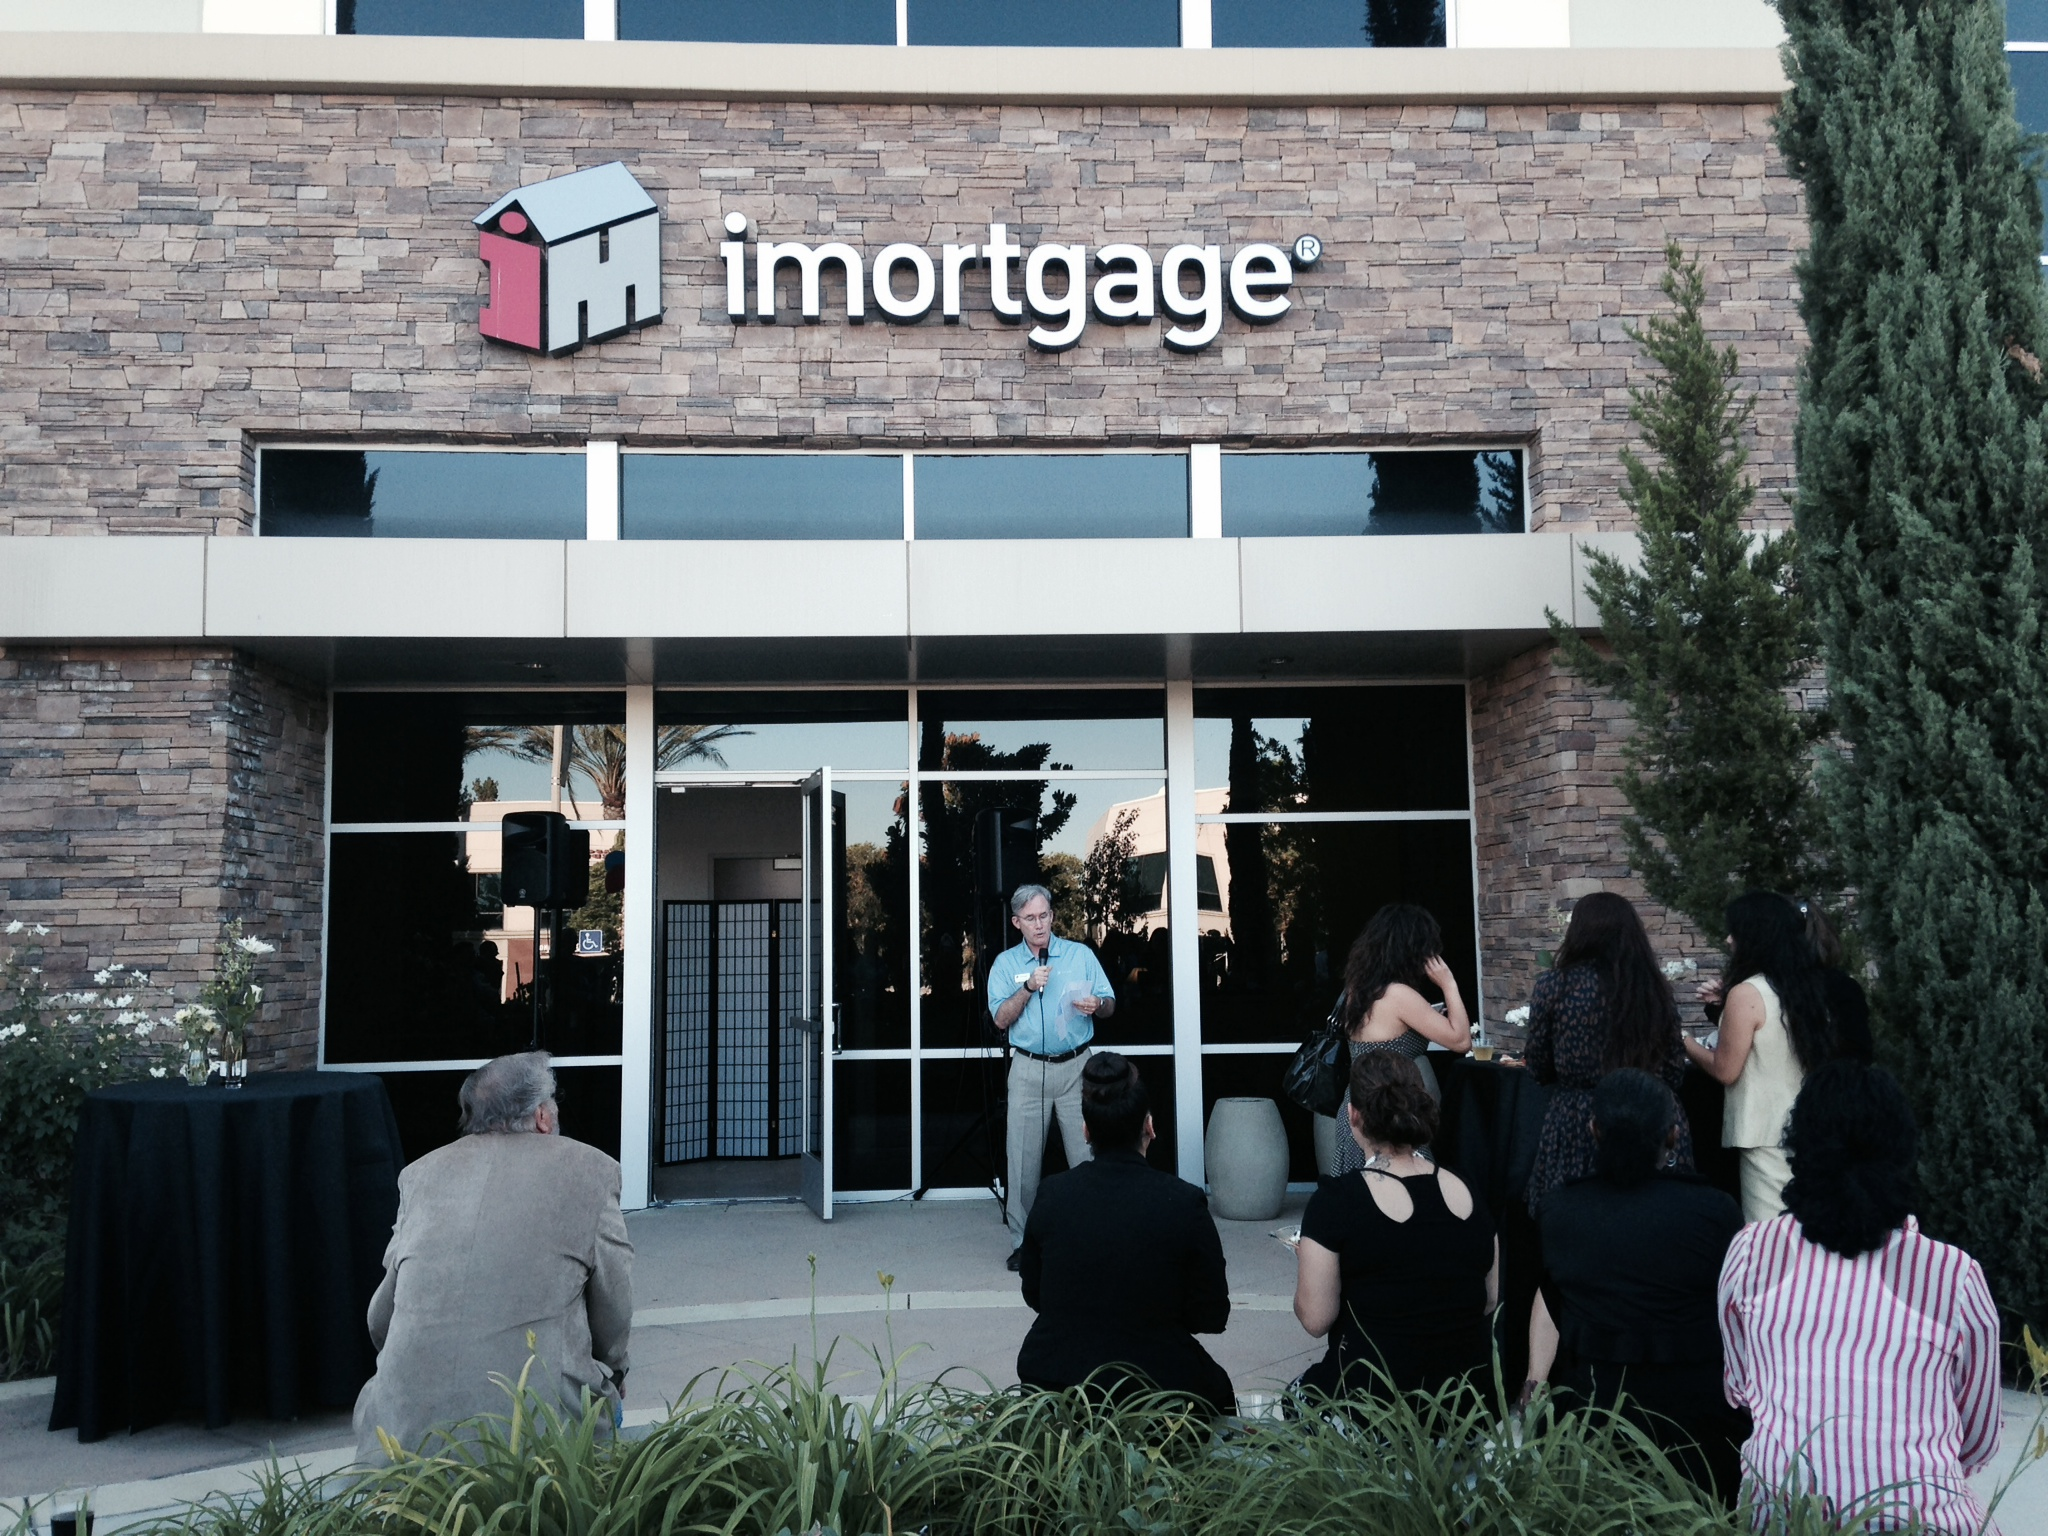 People standing outside a building marked imortgage